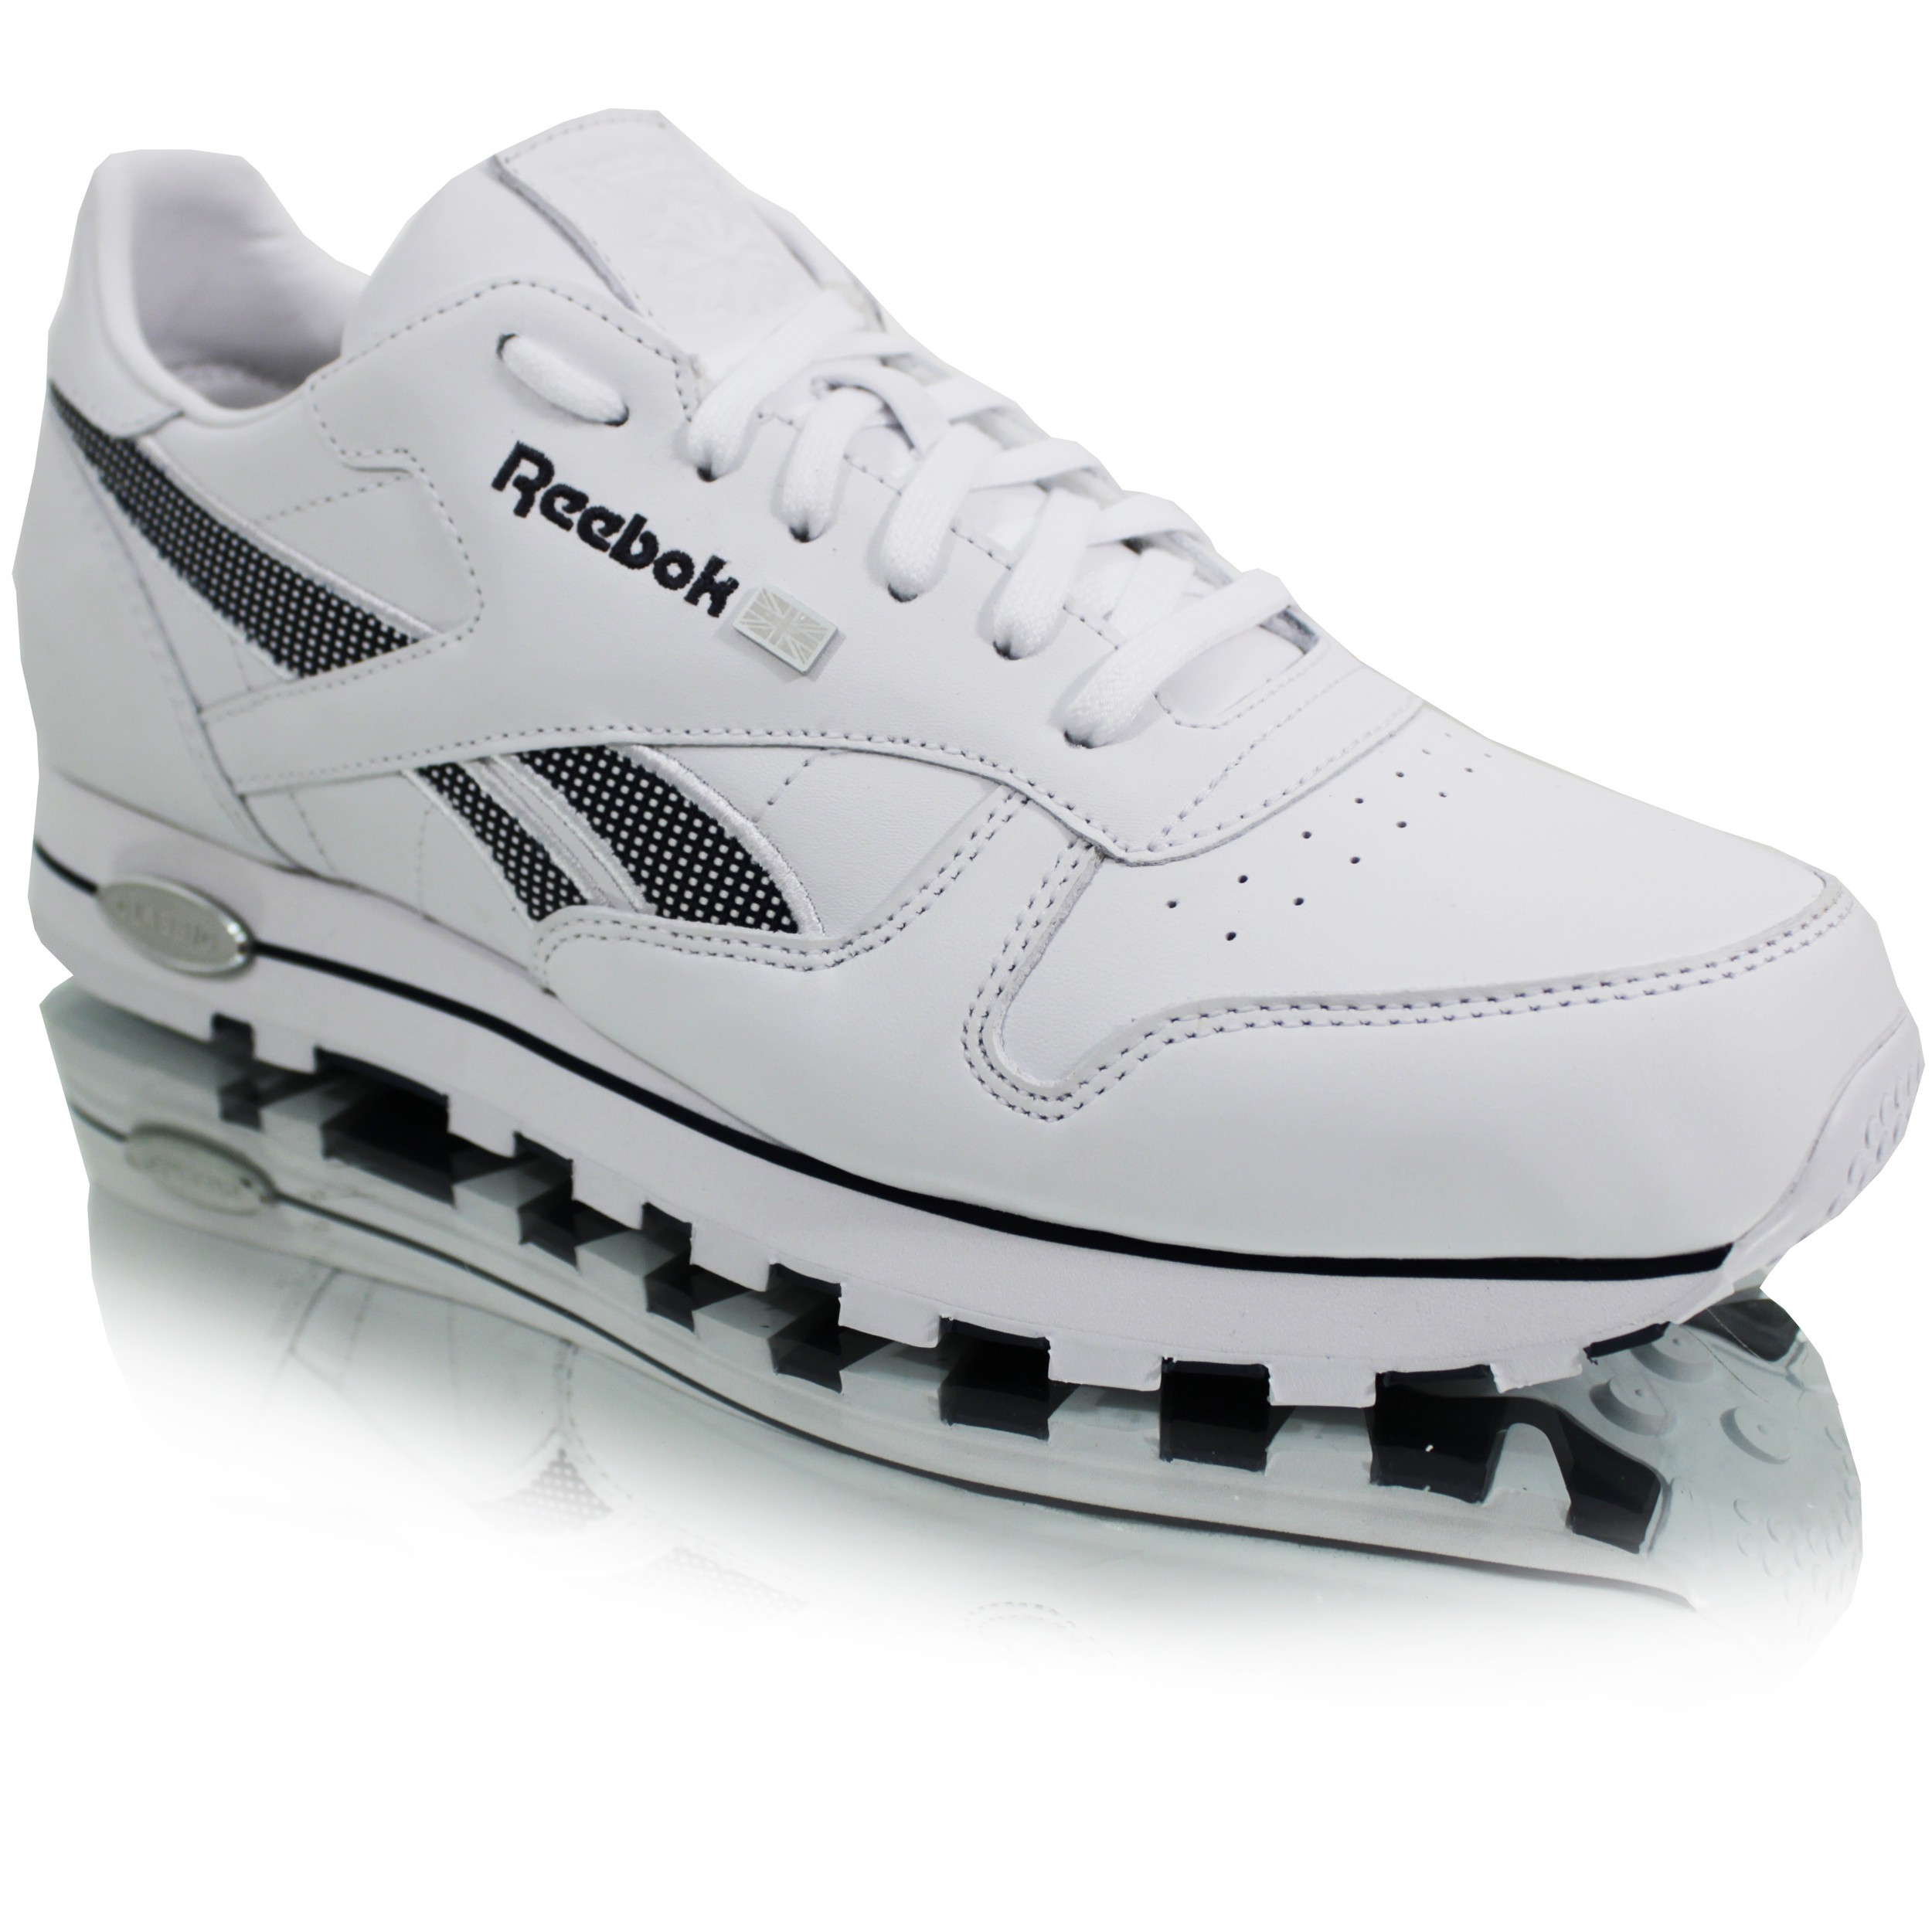 reebok classic leather leisure shoes 45